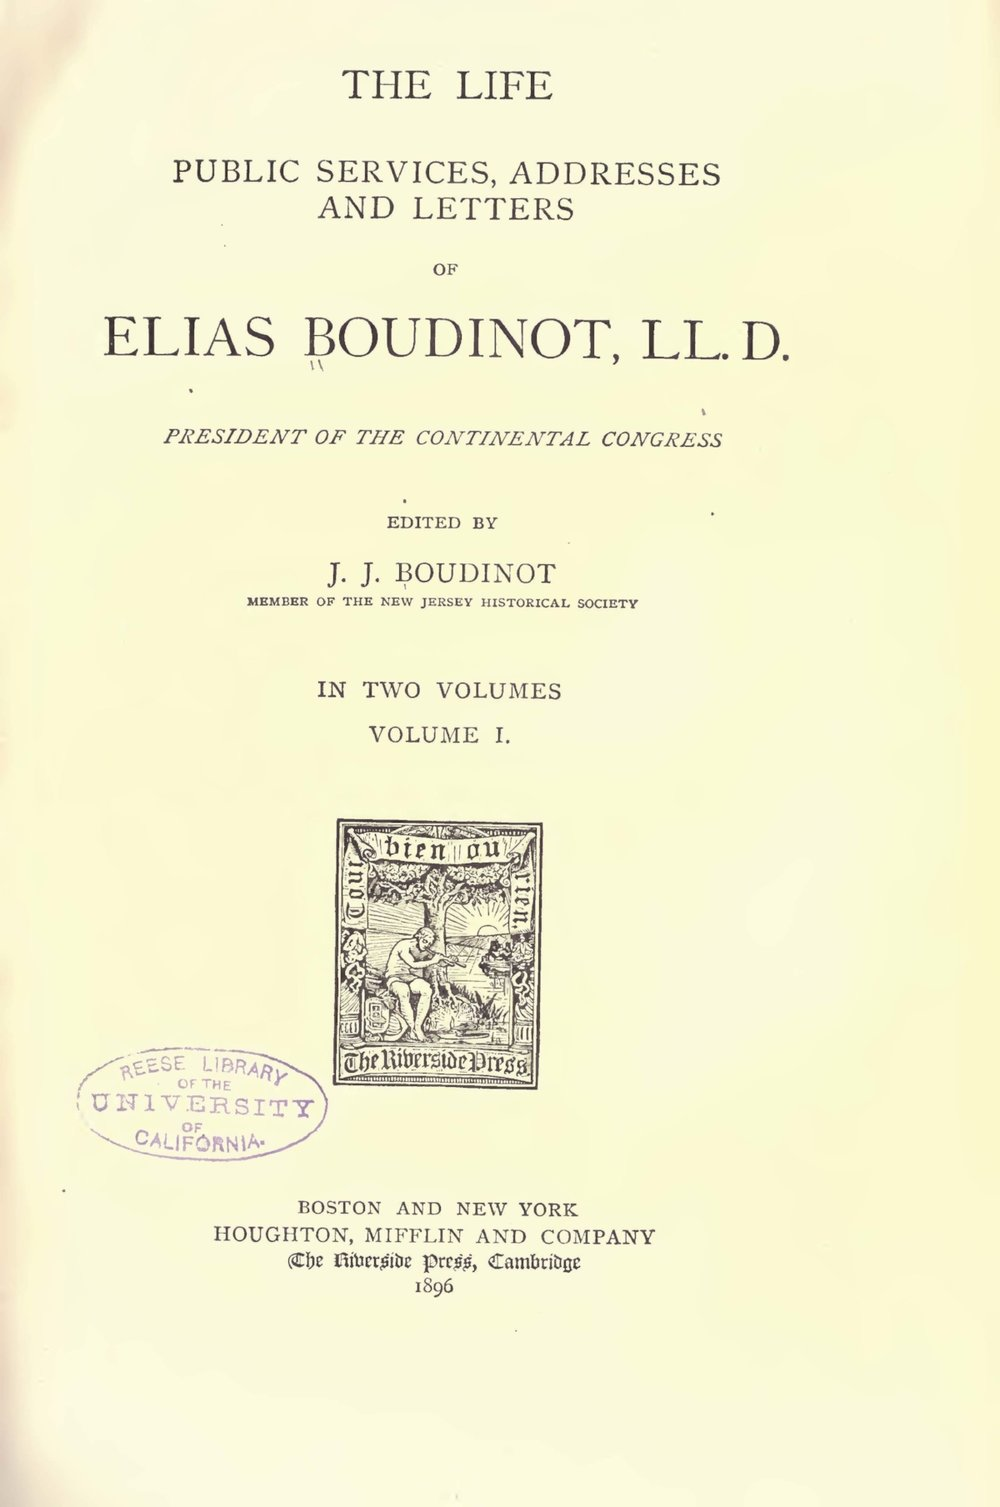 Boudinot, Elias IV, The Life, Public Services, Addresses and Letters of Elias Boudinot Vol. 1 Title Page.jpg